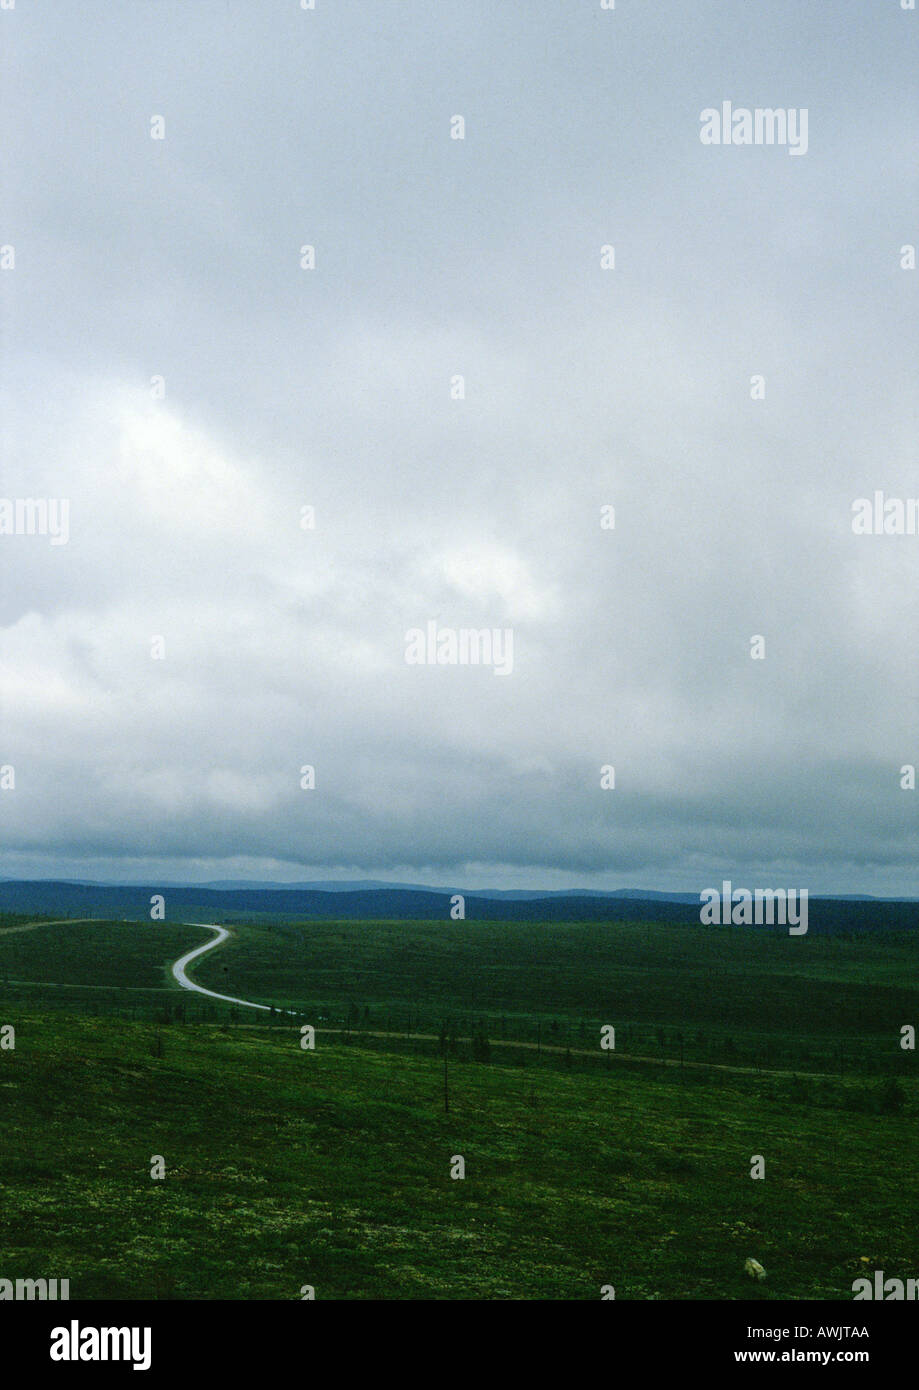 Iceland, road through plain under cloudy sky - Stock Image